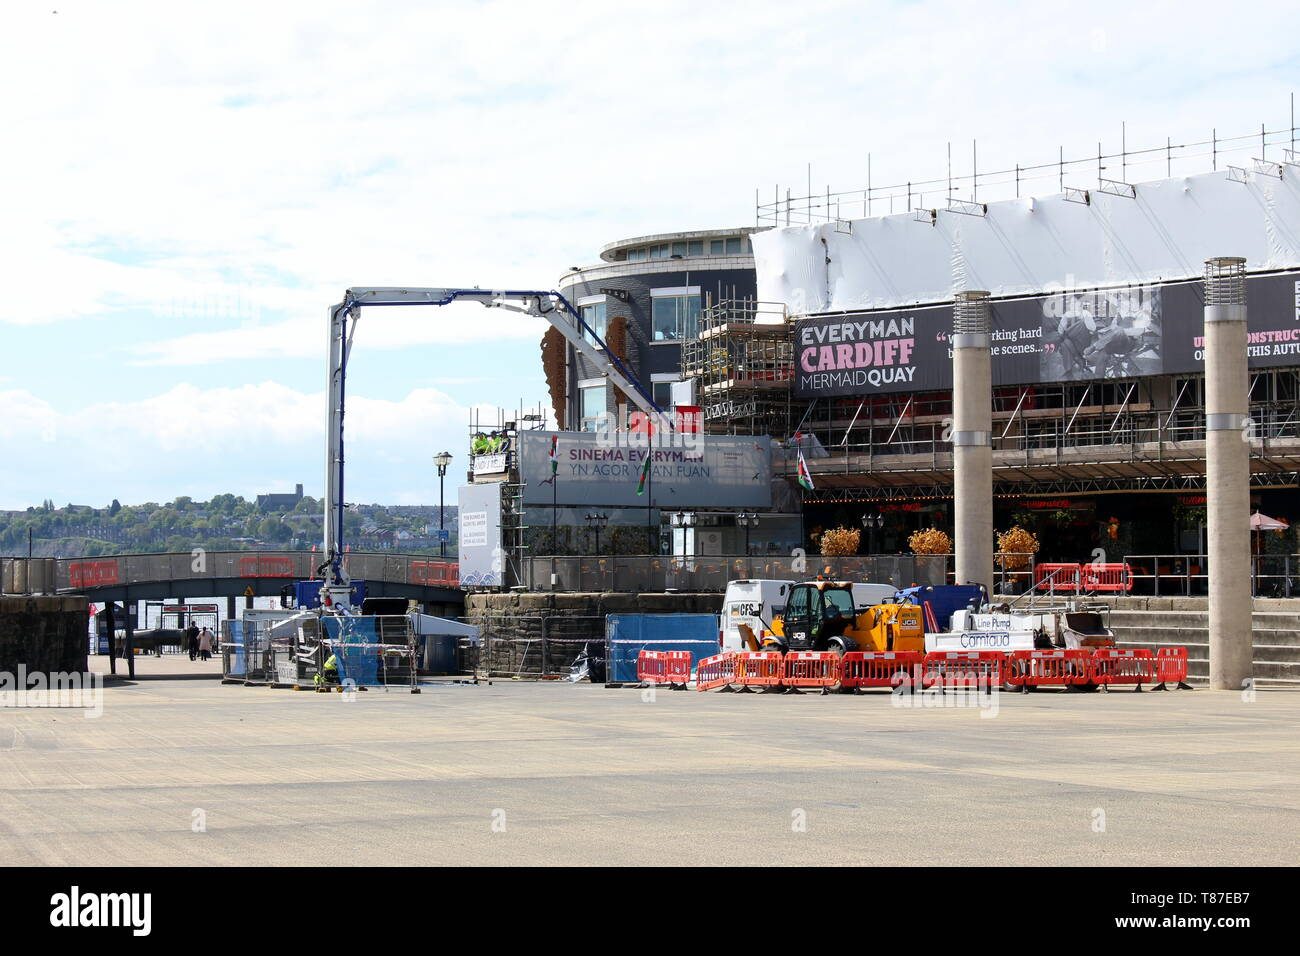 10 May 2019: Cardiff Bay, Cardiff UK:  Construction work in Mermaid Quay's Roald Dahl Plass, to construct Everyman Cinema and eateries. Stock Photo